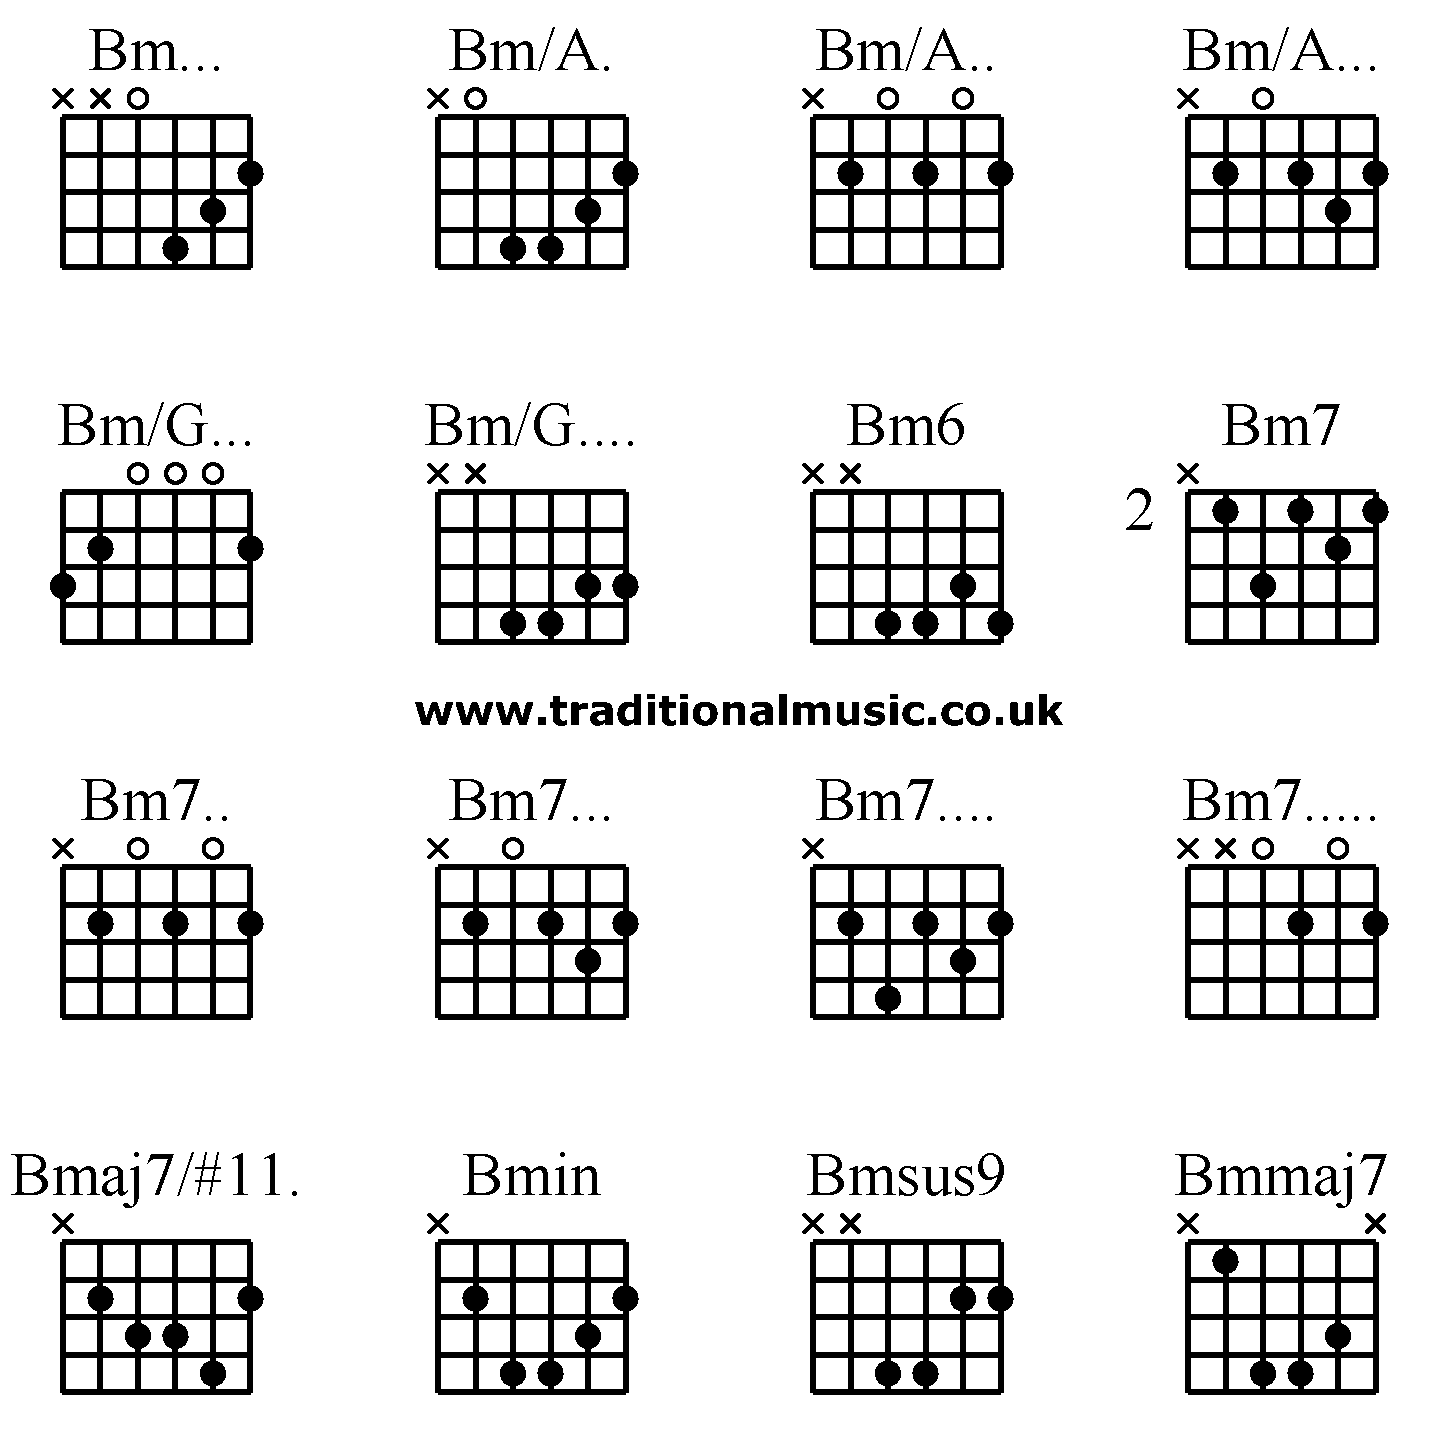 Guitar Chords Advanced Bm Bma Bma Bma Bmg Bmg Bm6 Bm7